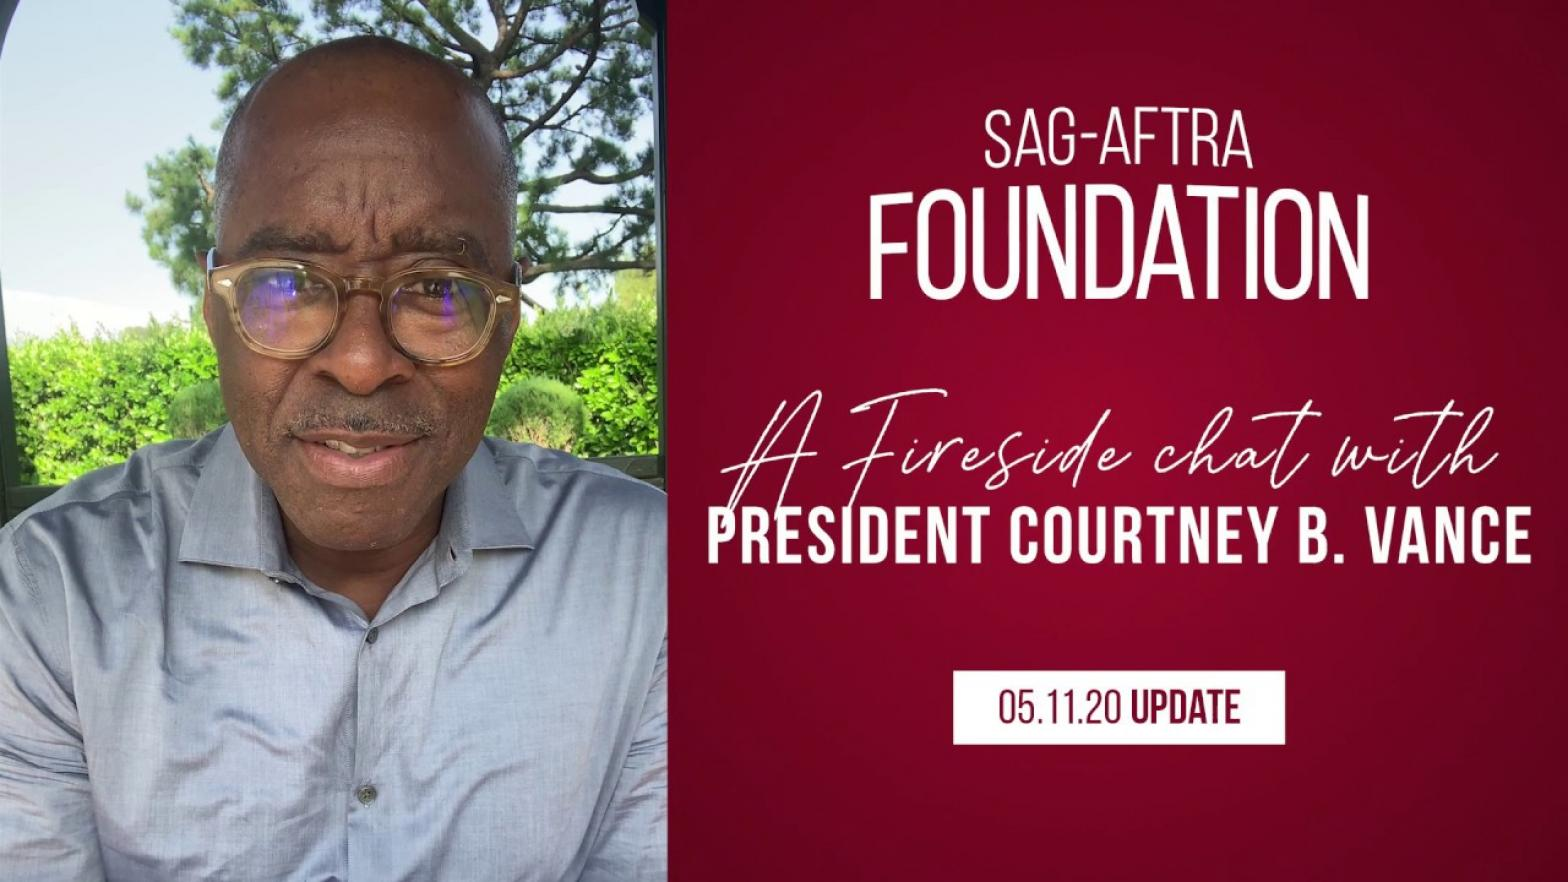 "Vance on the left half wearing a silk silver button up shirt. On the right from top to bottom, the SAG-AFTRA Foundation Logo in white and ""A Fireside chat with President Courtney B. Vance"" at the bottom in a white box ""05.11.20 Update"" in a deep red"